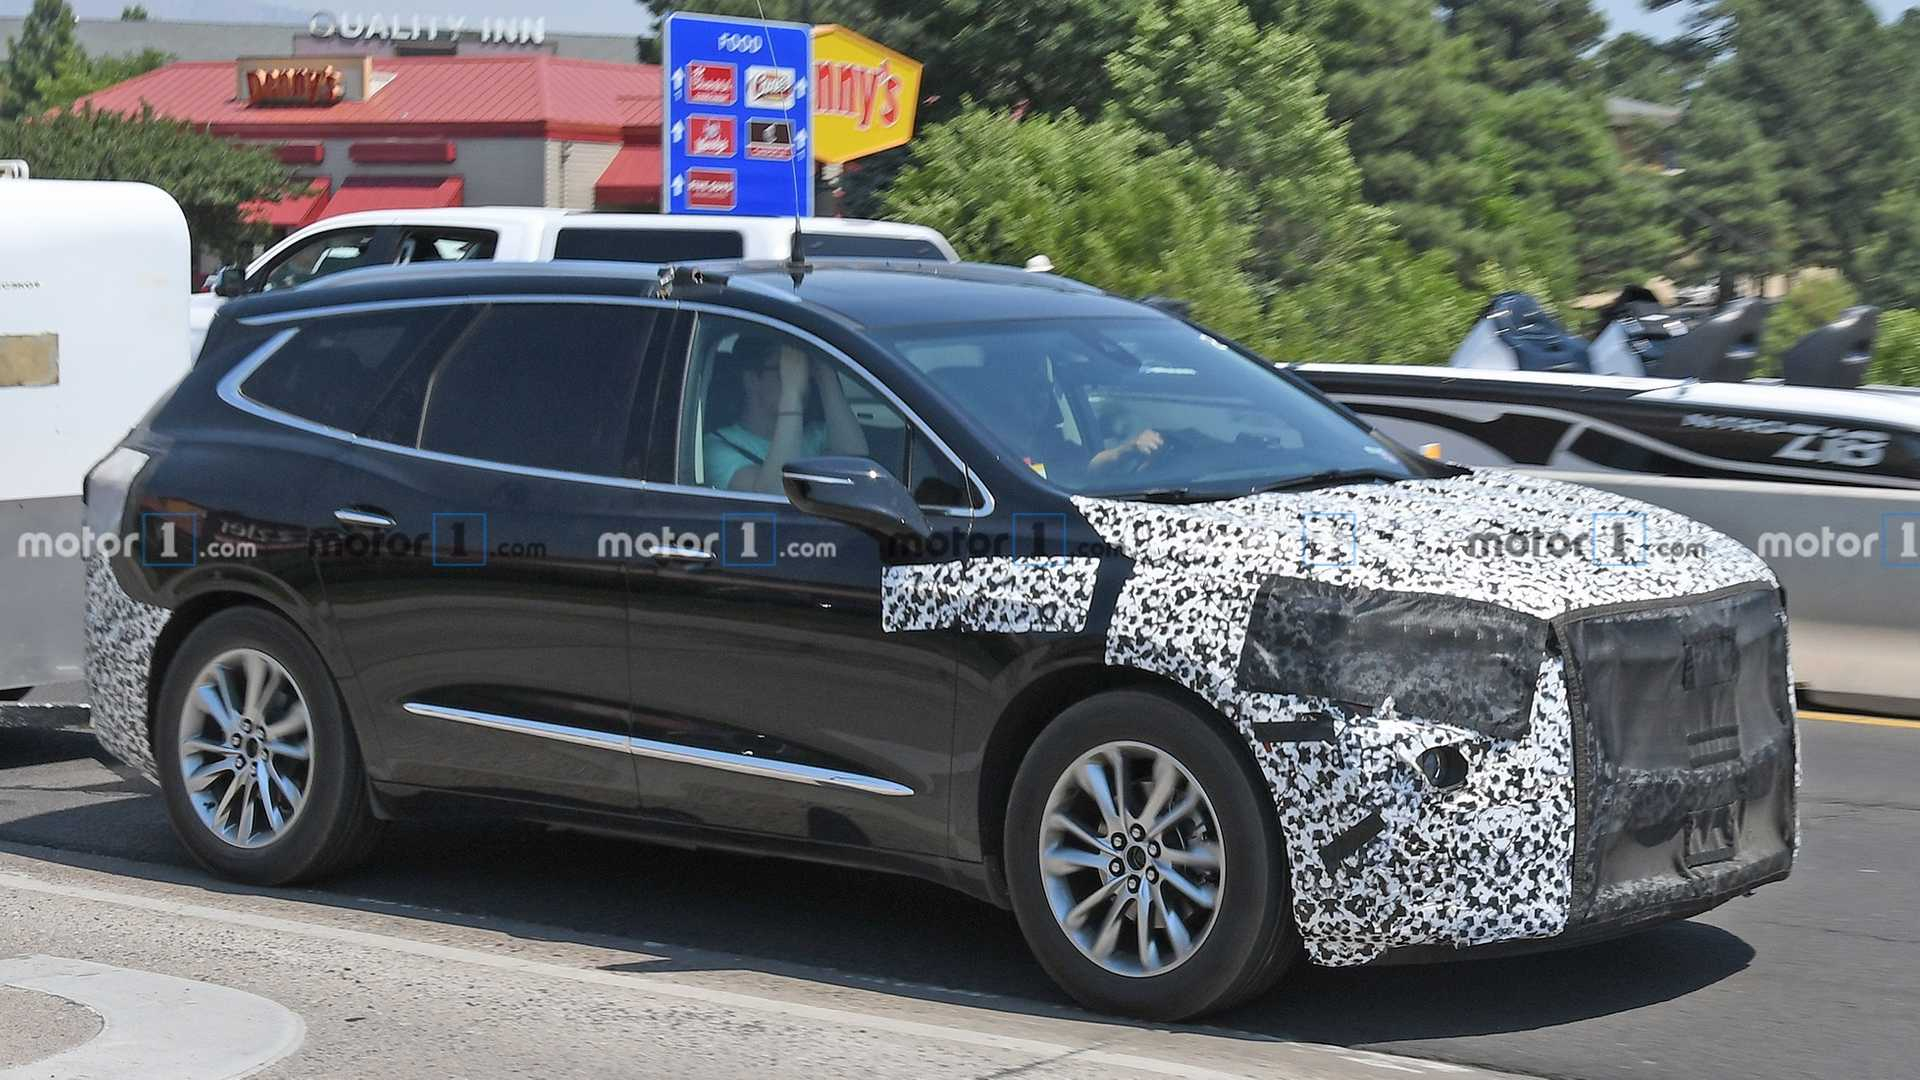 2021 Buick Enclave Spied For The First Time Build A 2022 Buick Enclave Avenir